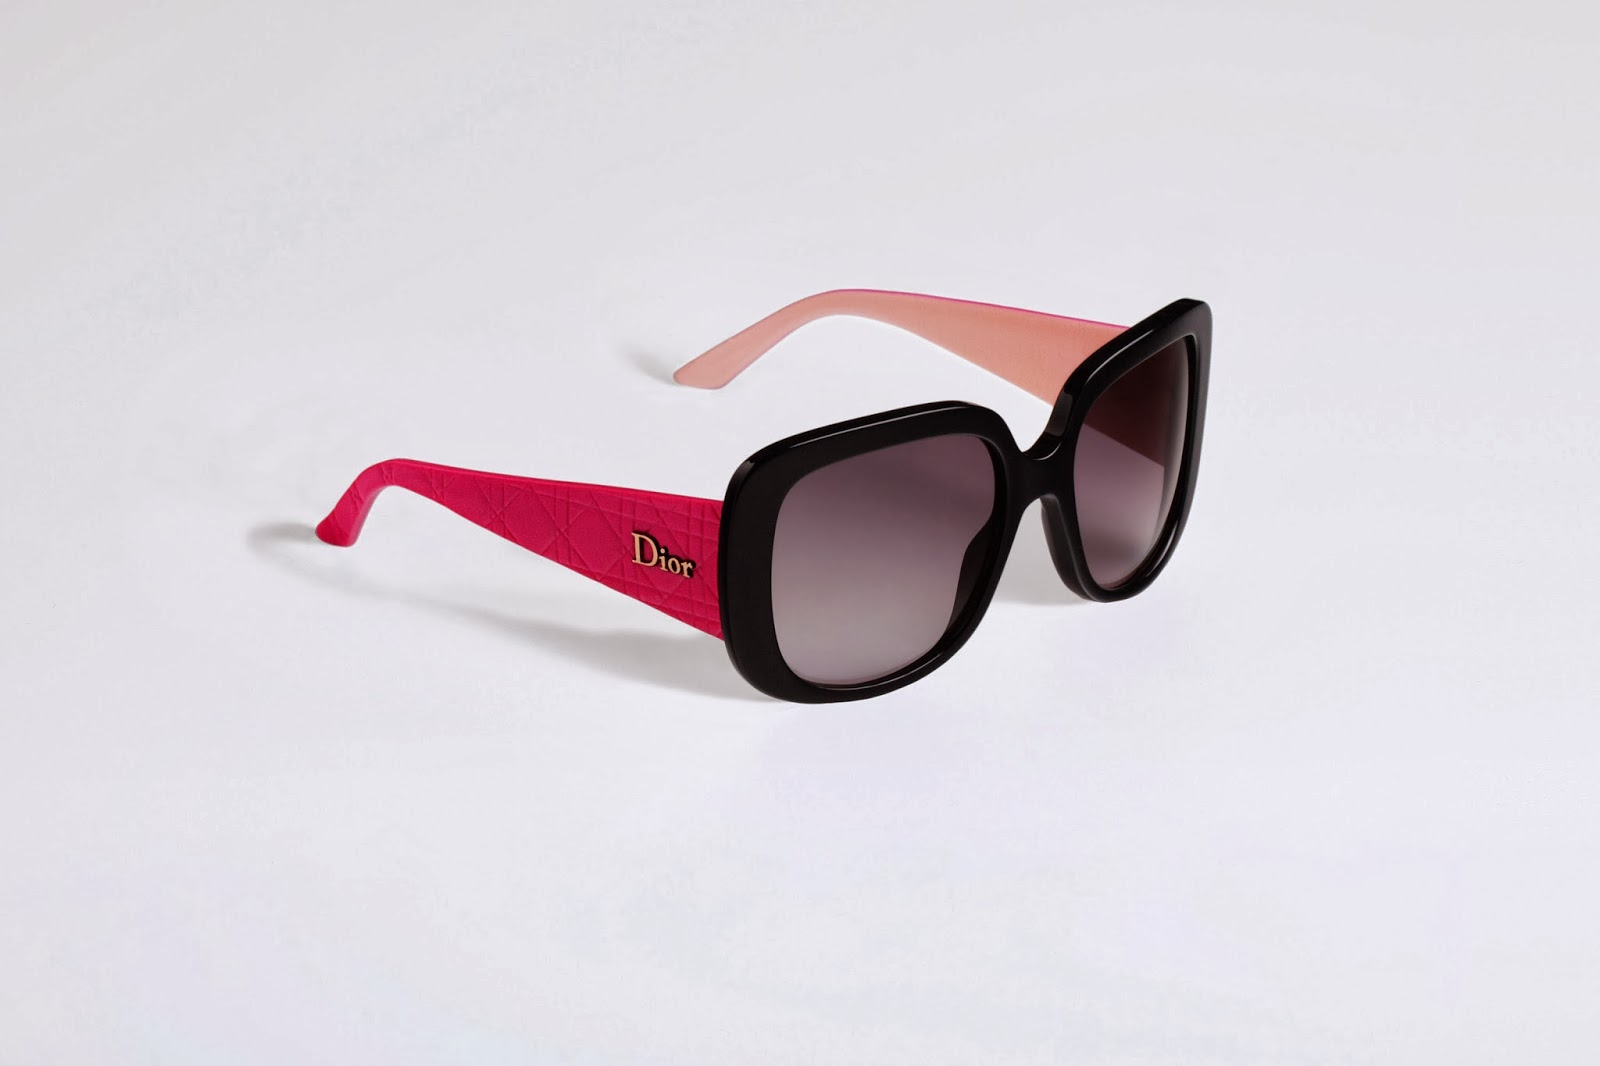 http://www.dior.com/couture/en_gb/womens-fashion/accessories/eyewear/black-fuchsia-and-pink-dior-lady-lady-1-sunglasses-6-7068